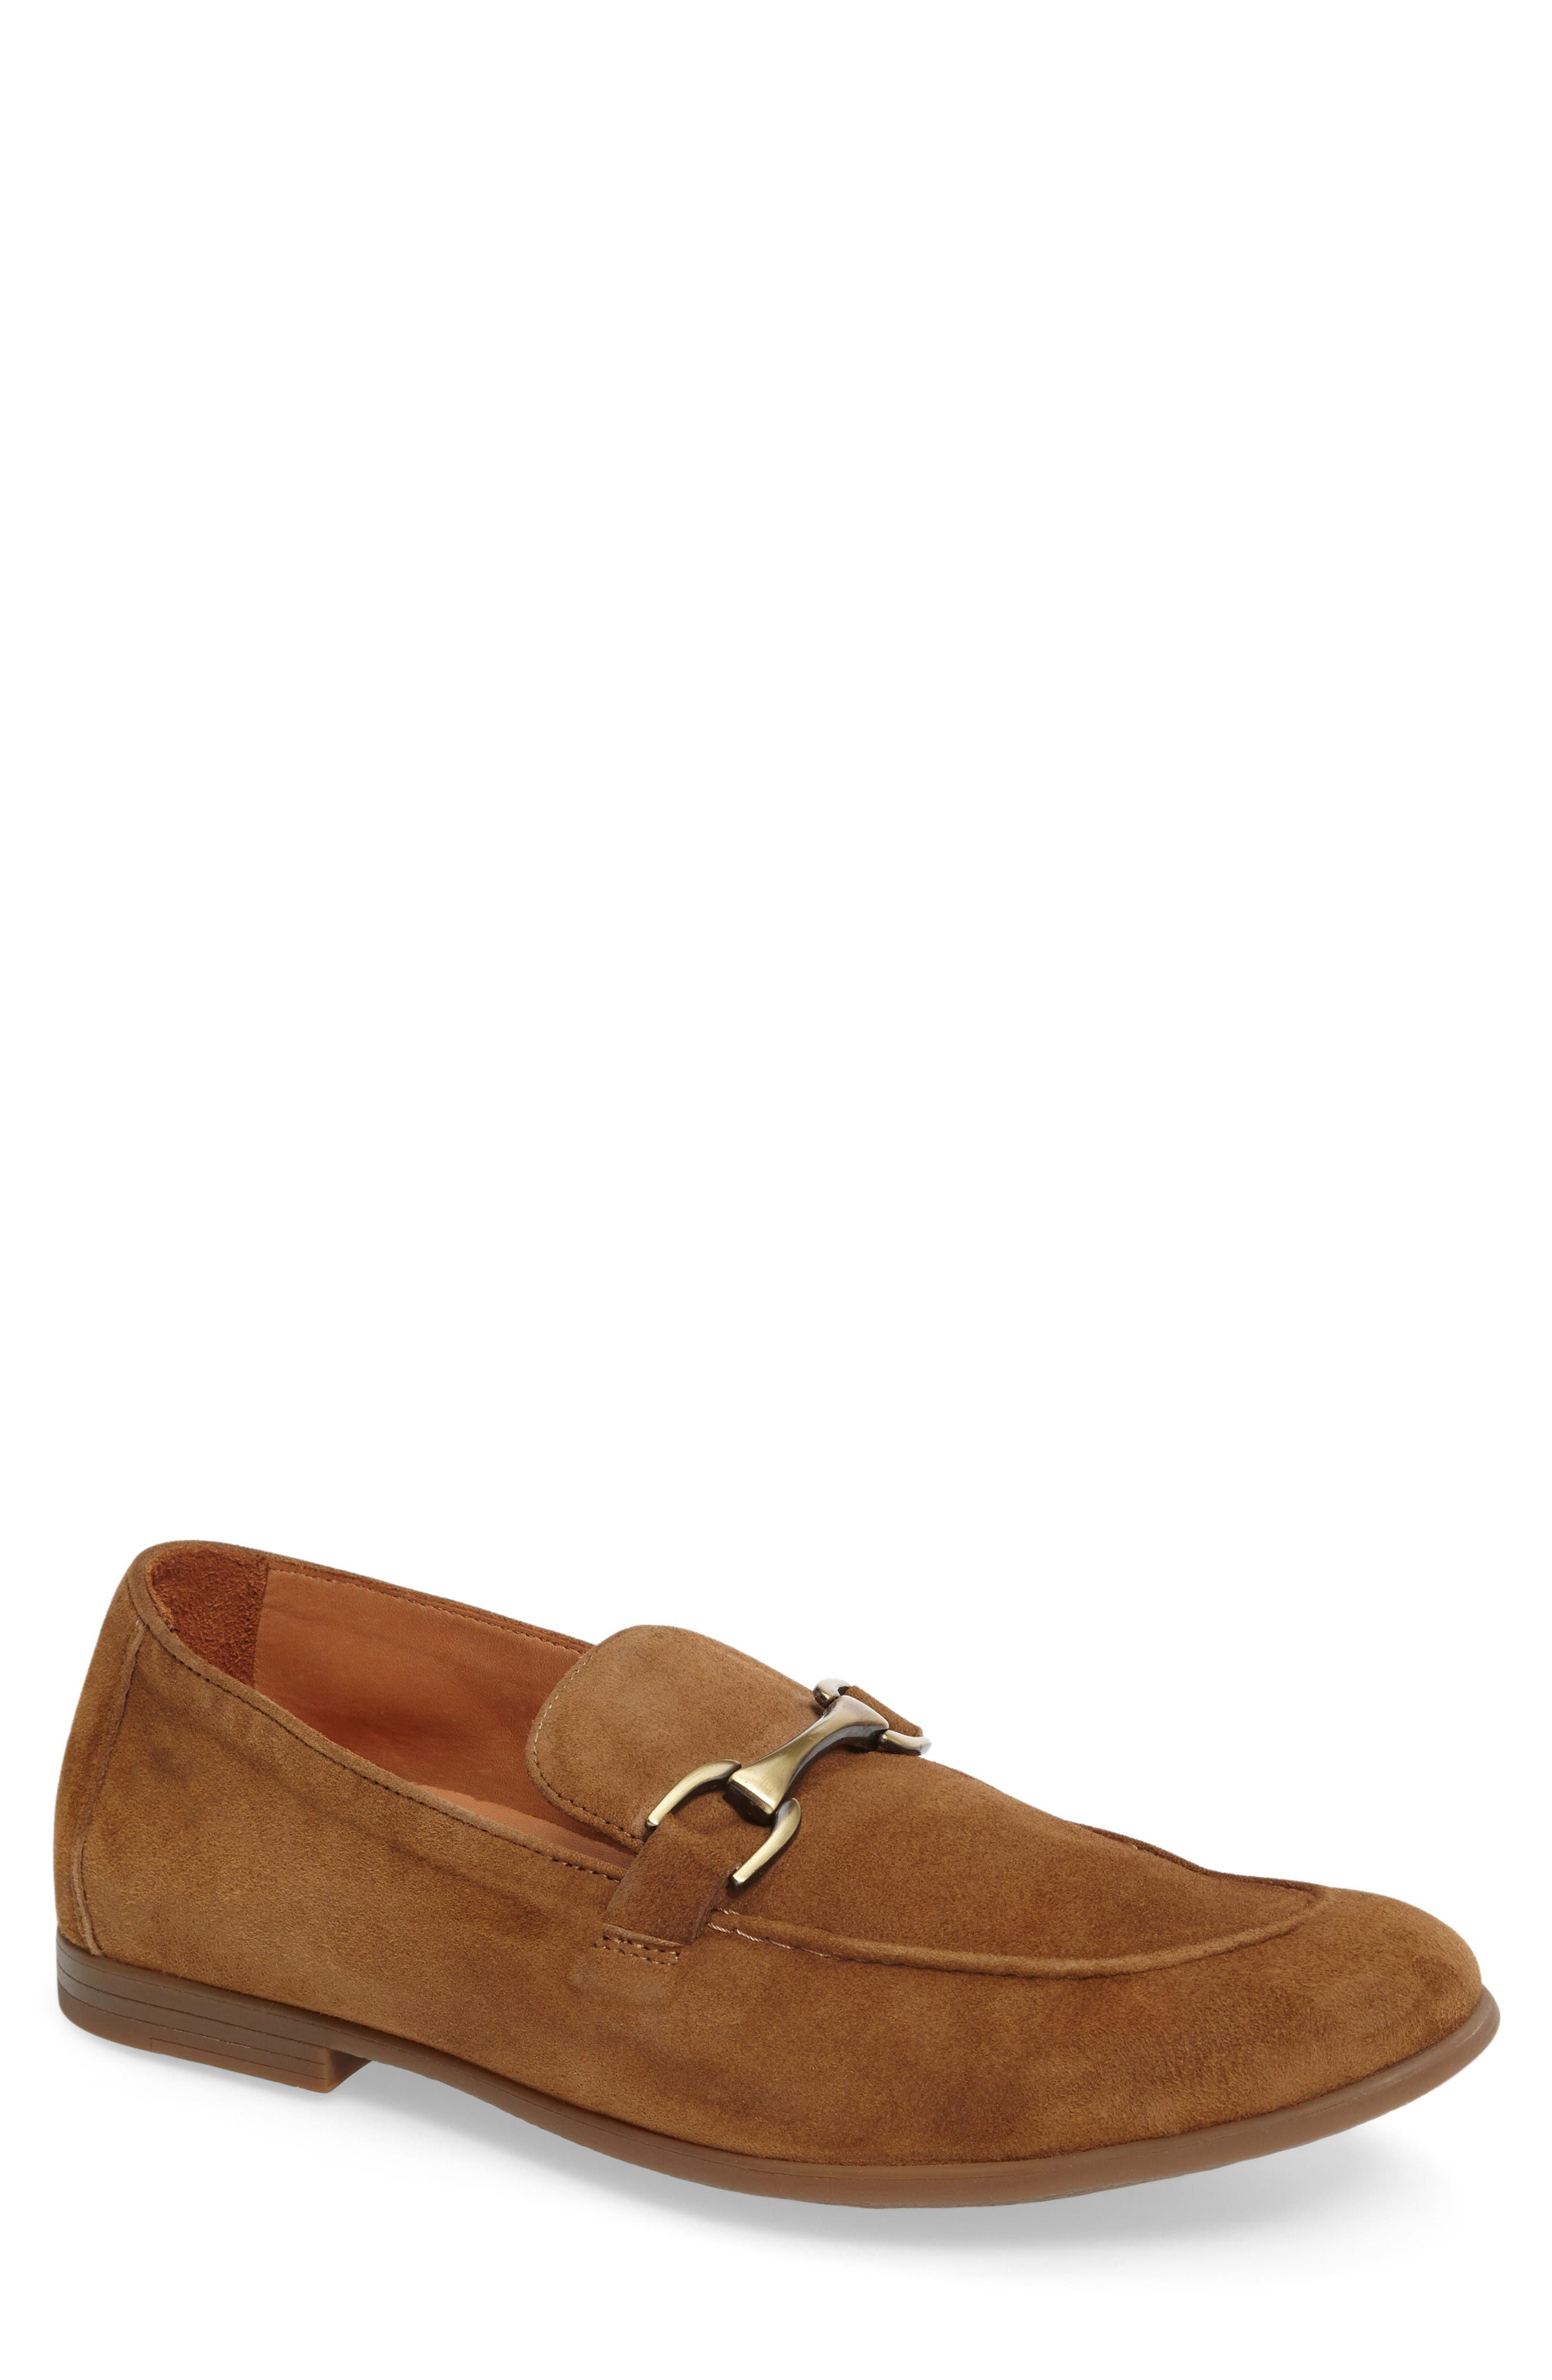 VINCE CAMUTO Dally Bit Loafer